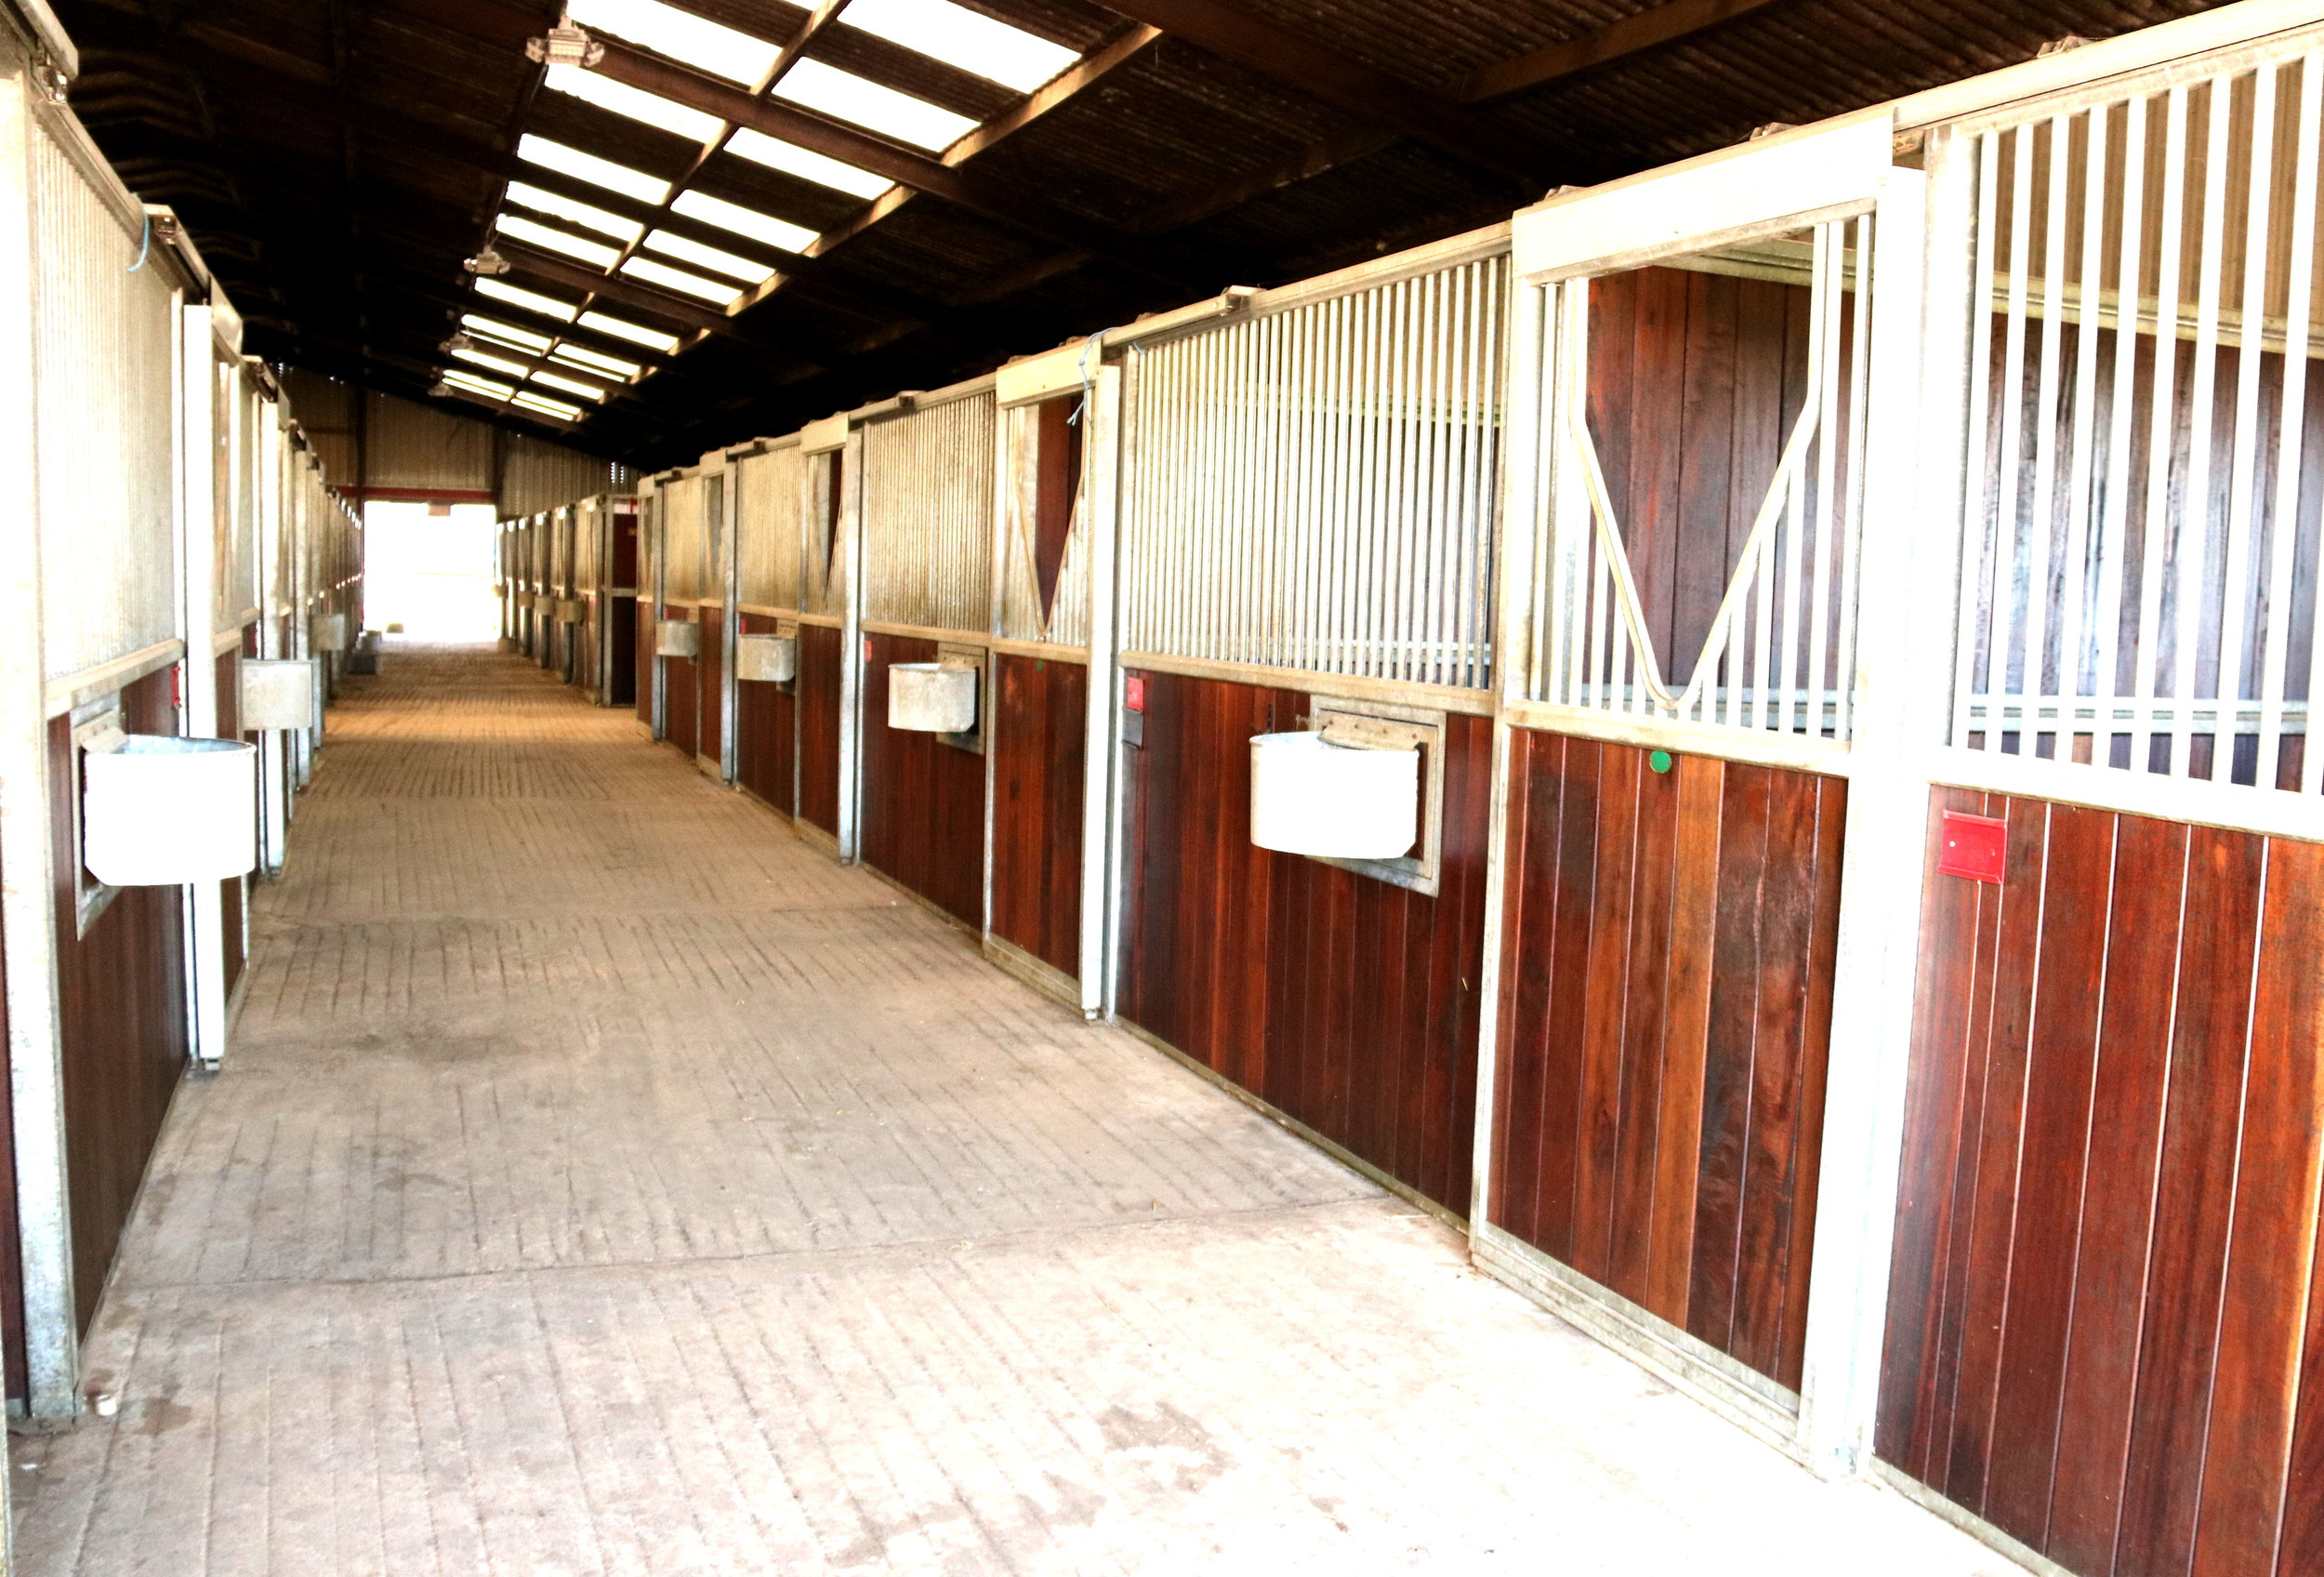 • Monarch Stables 12 x 12 with rubber matting, automatic water and swinging mangers